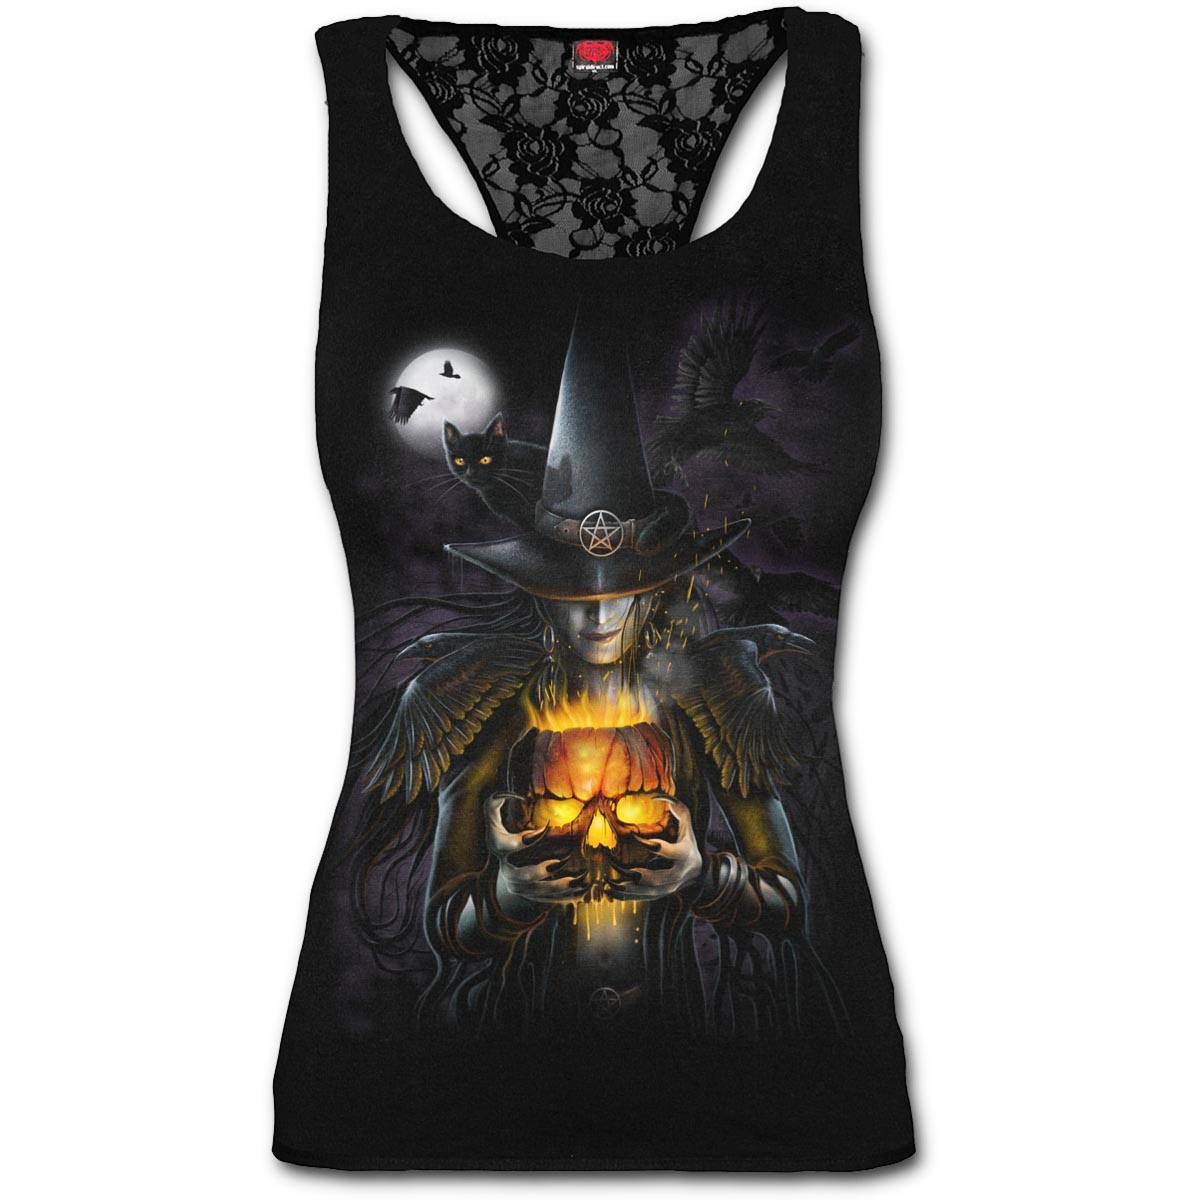 Spiral-Ladies-Black-Goth-WITCHING-HOUR-Halloween-Lace-Vest-Top-All-Sizes thumbnail 3